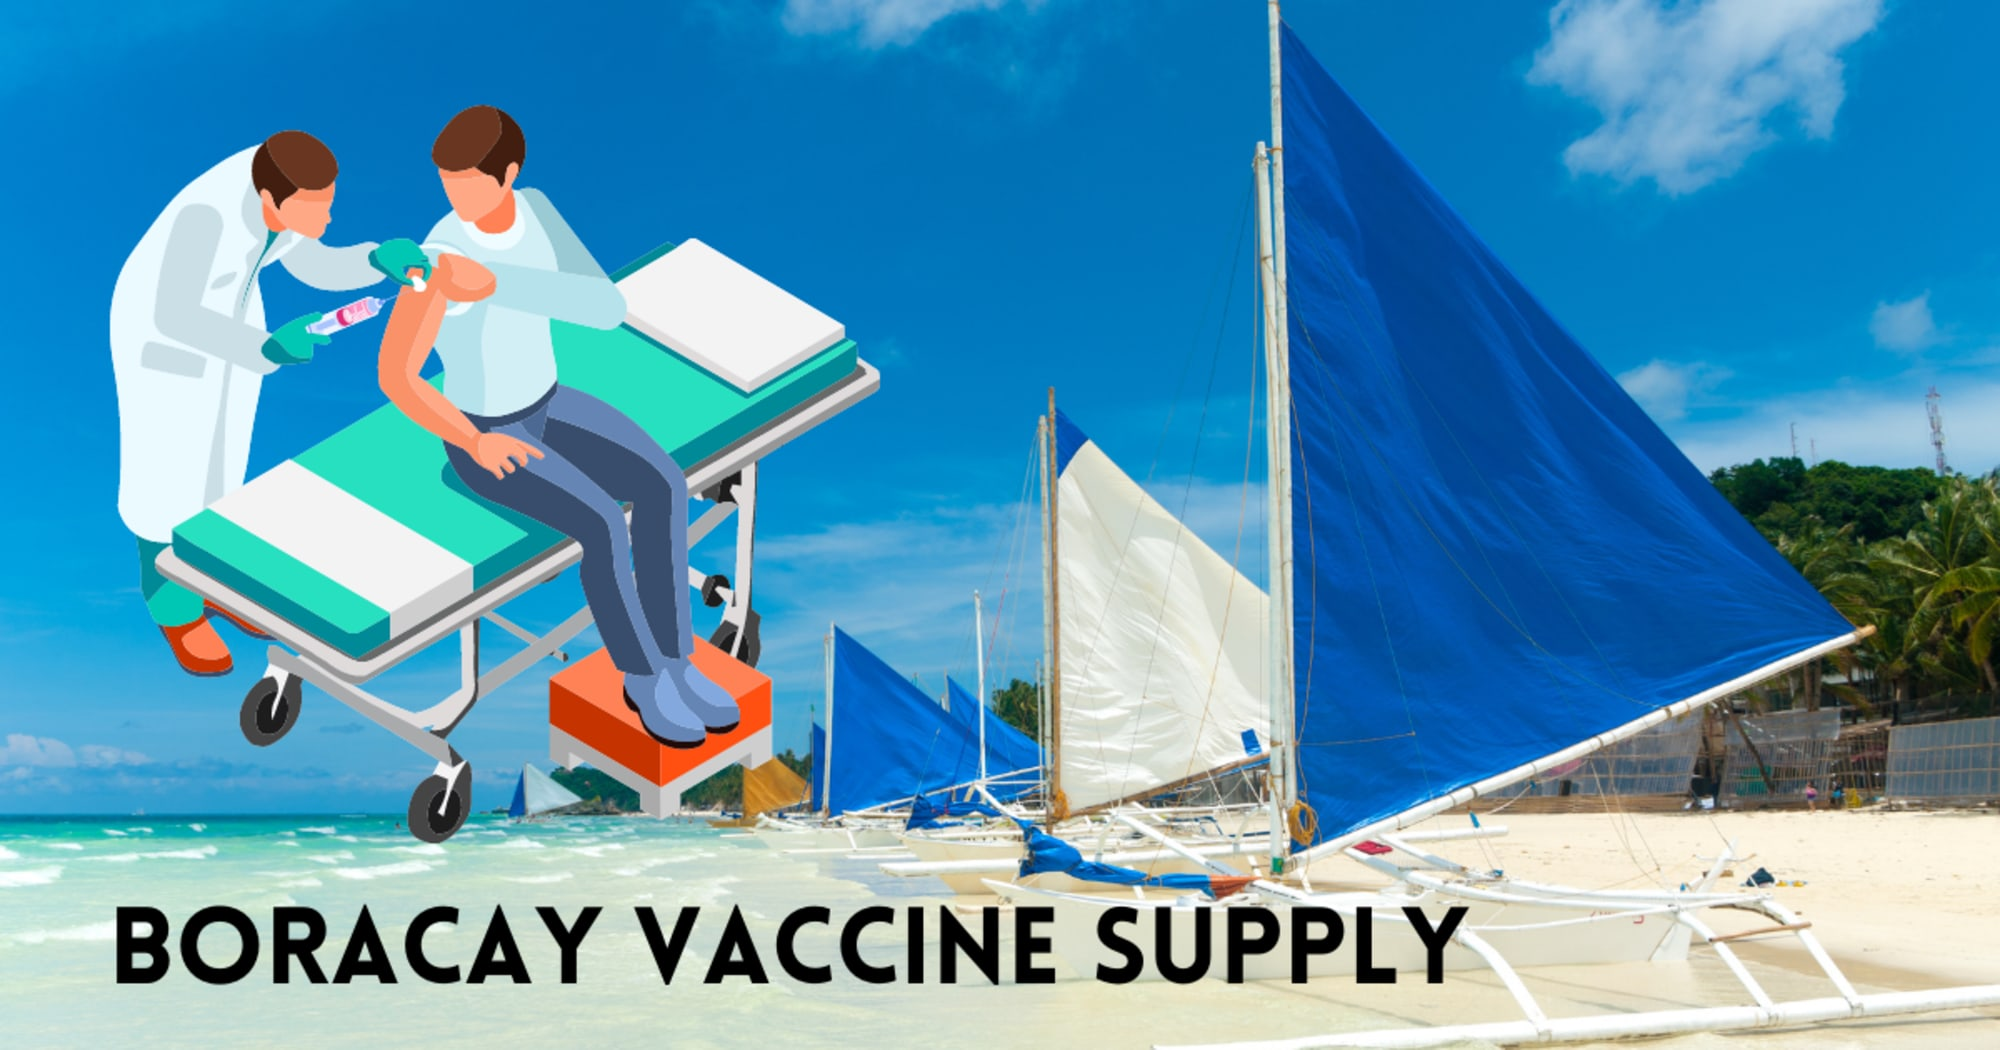 Boracay supply of vaccines is not enough